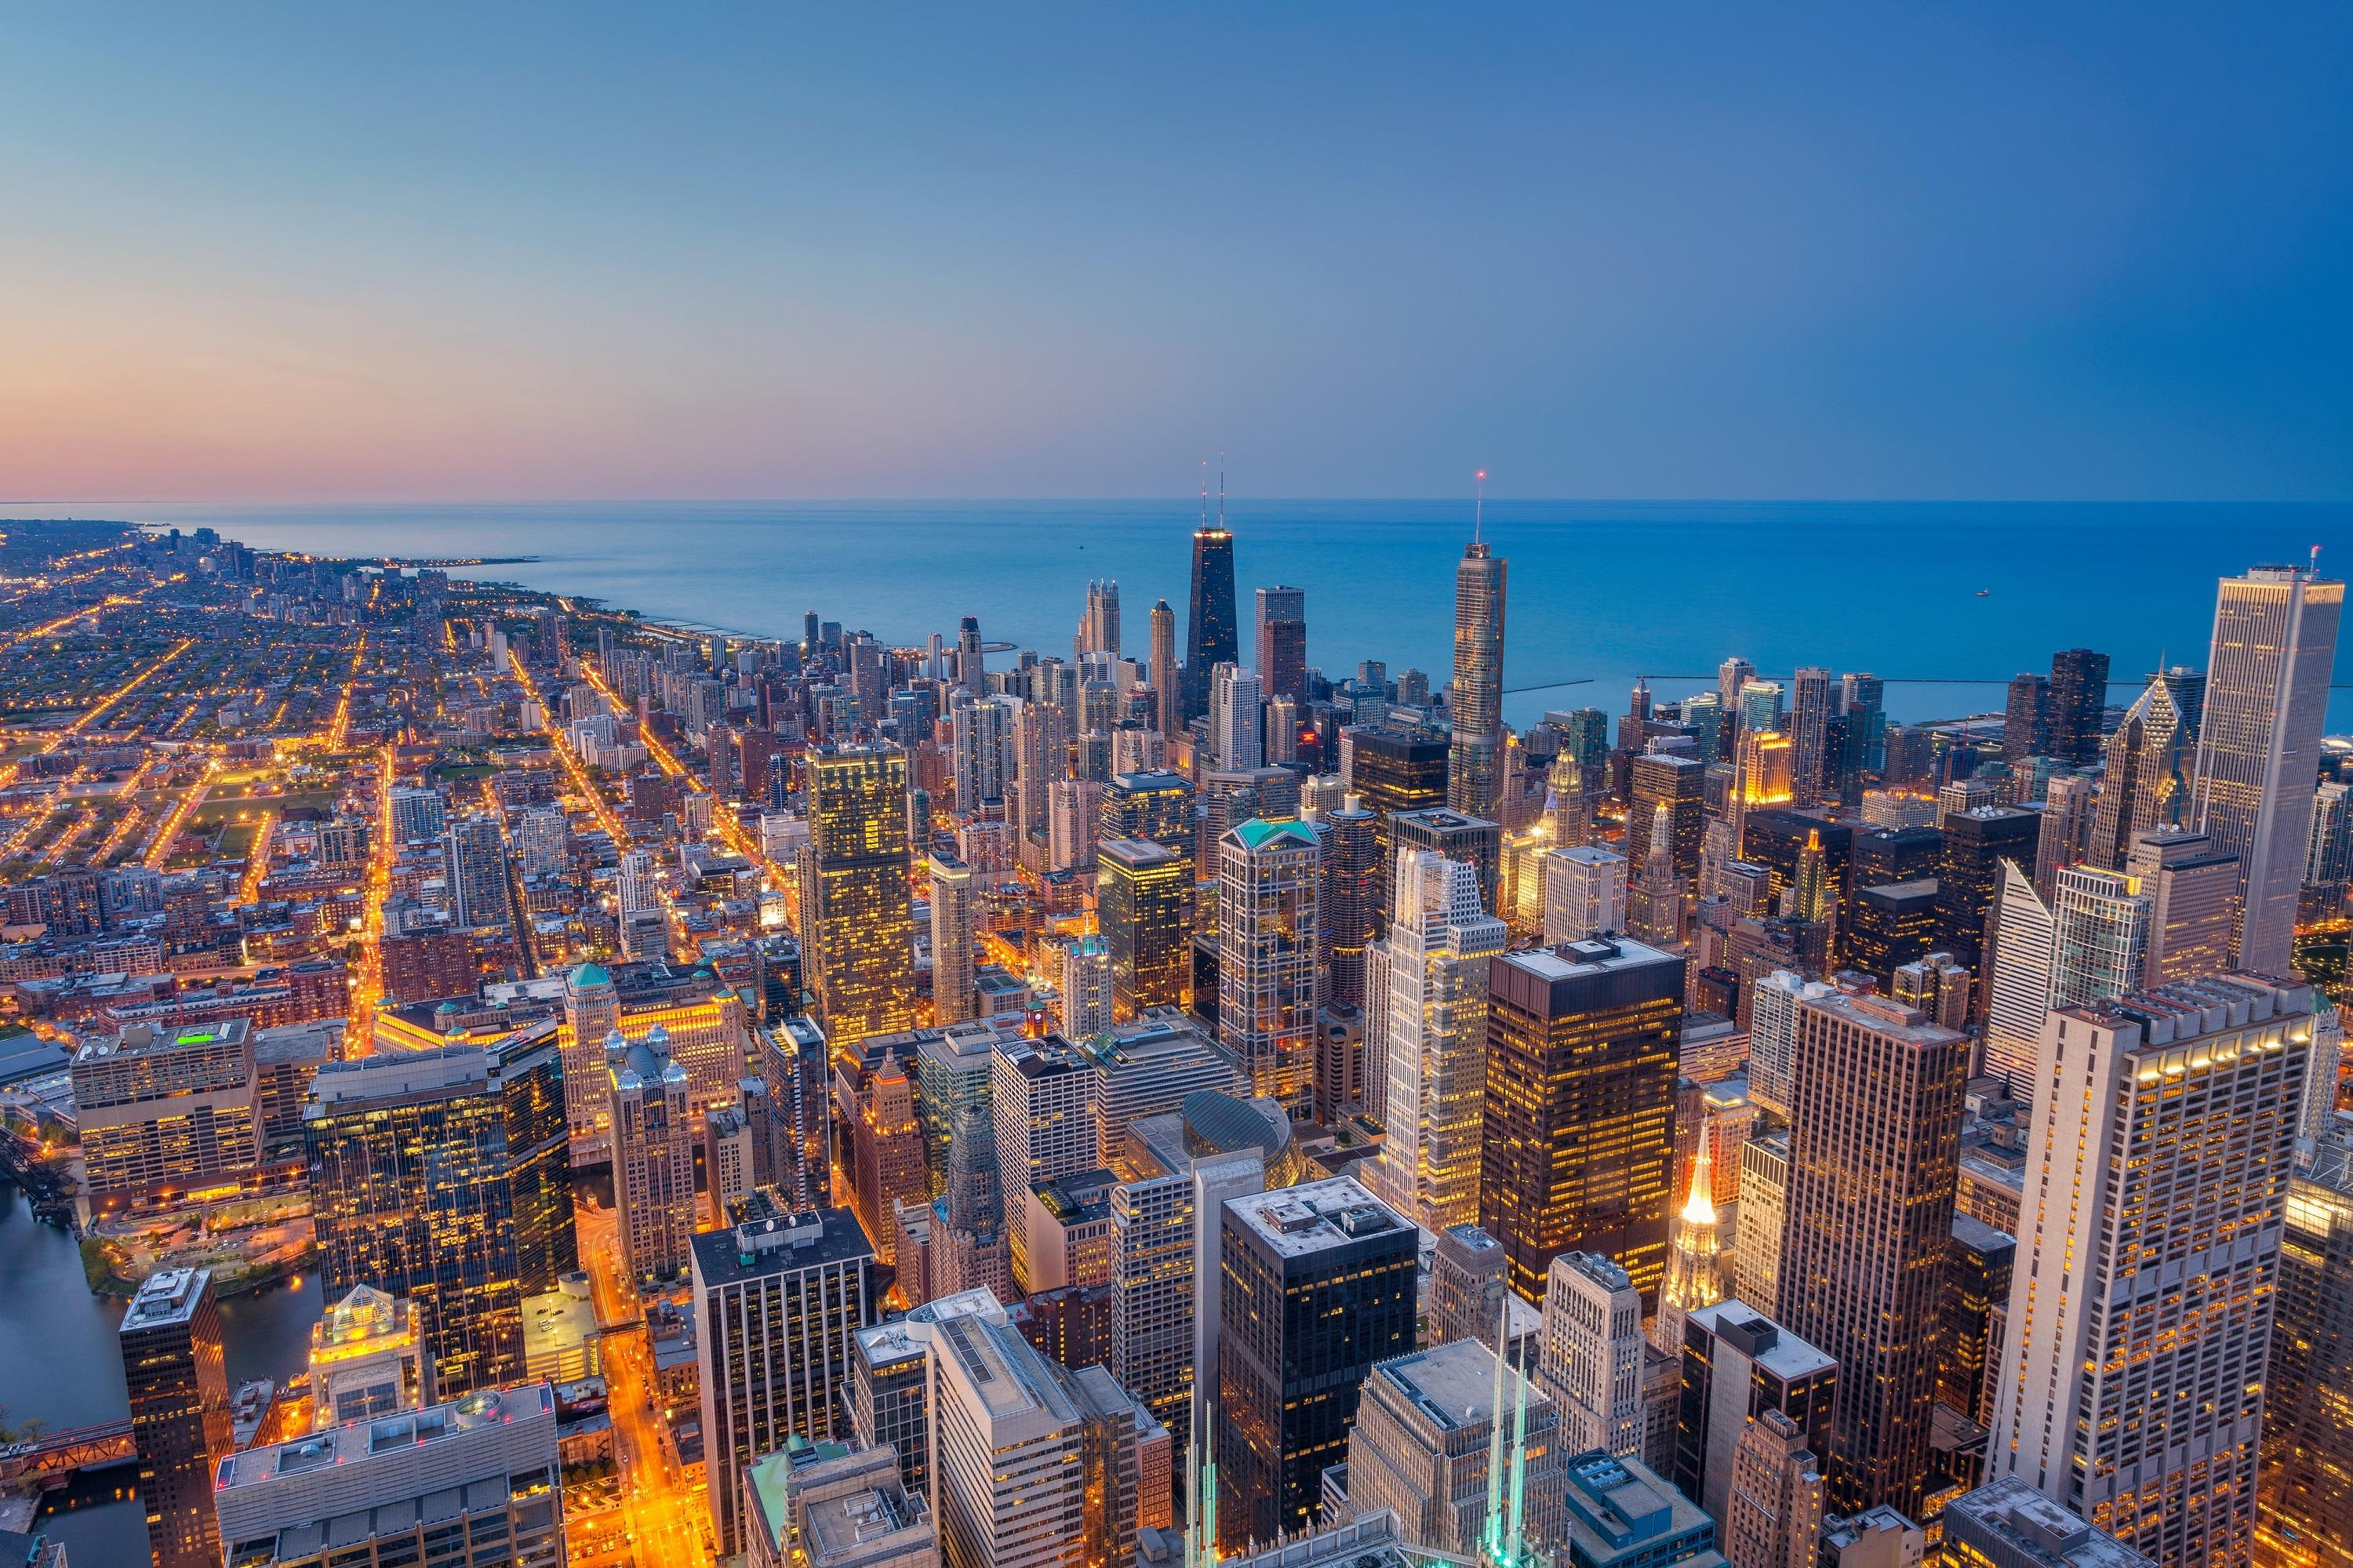 Cityscape image of Chicago downtown during twilight blue hour